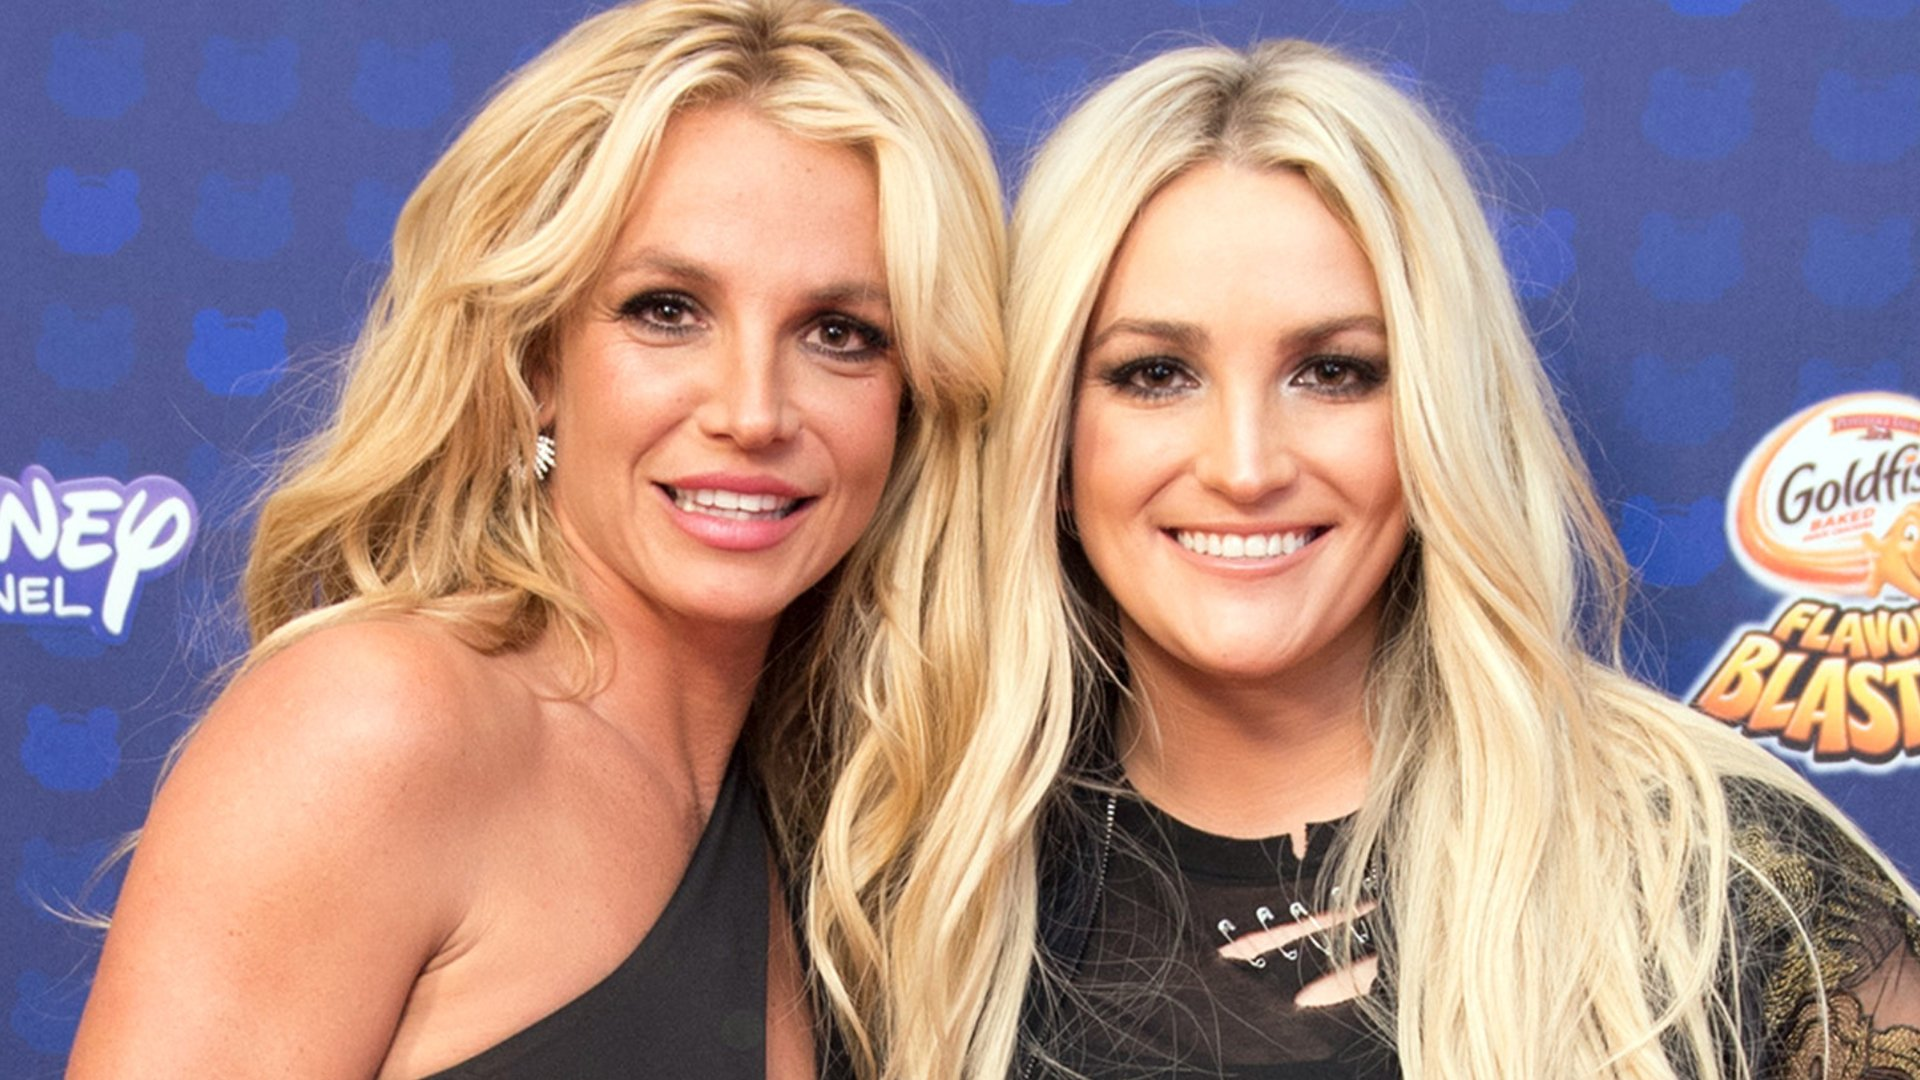 Jamie Lynn Spears Drags The Media For How Her Sister Britney Spears Was Treated Years Ago – 'Do Better!'